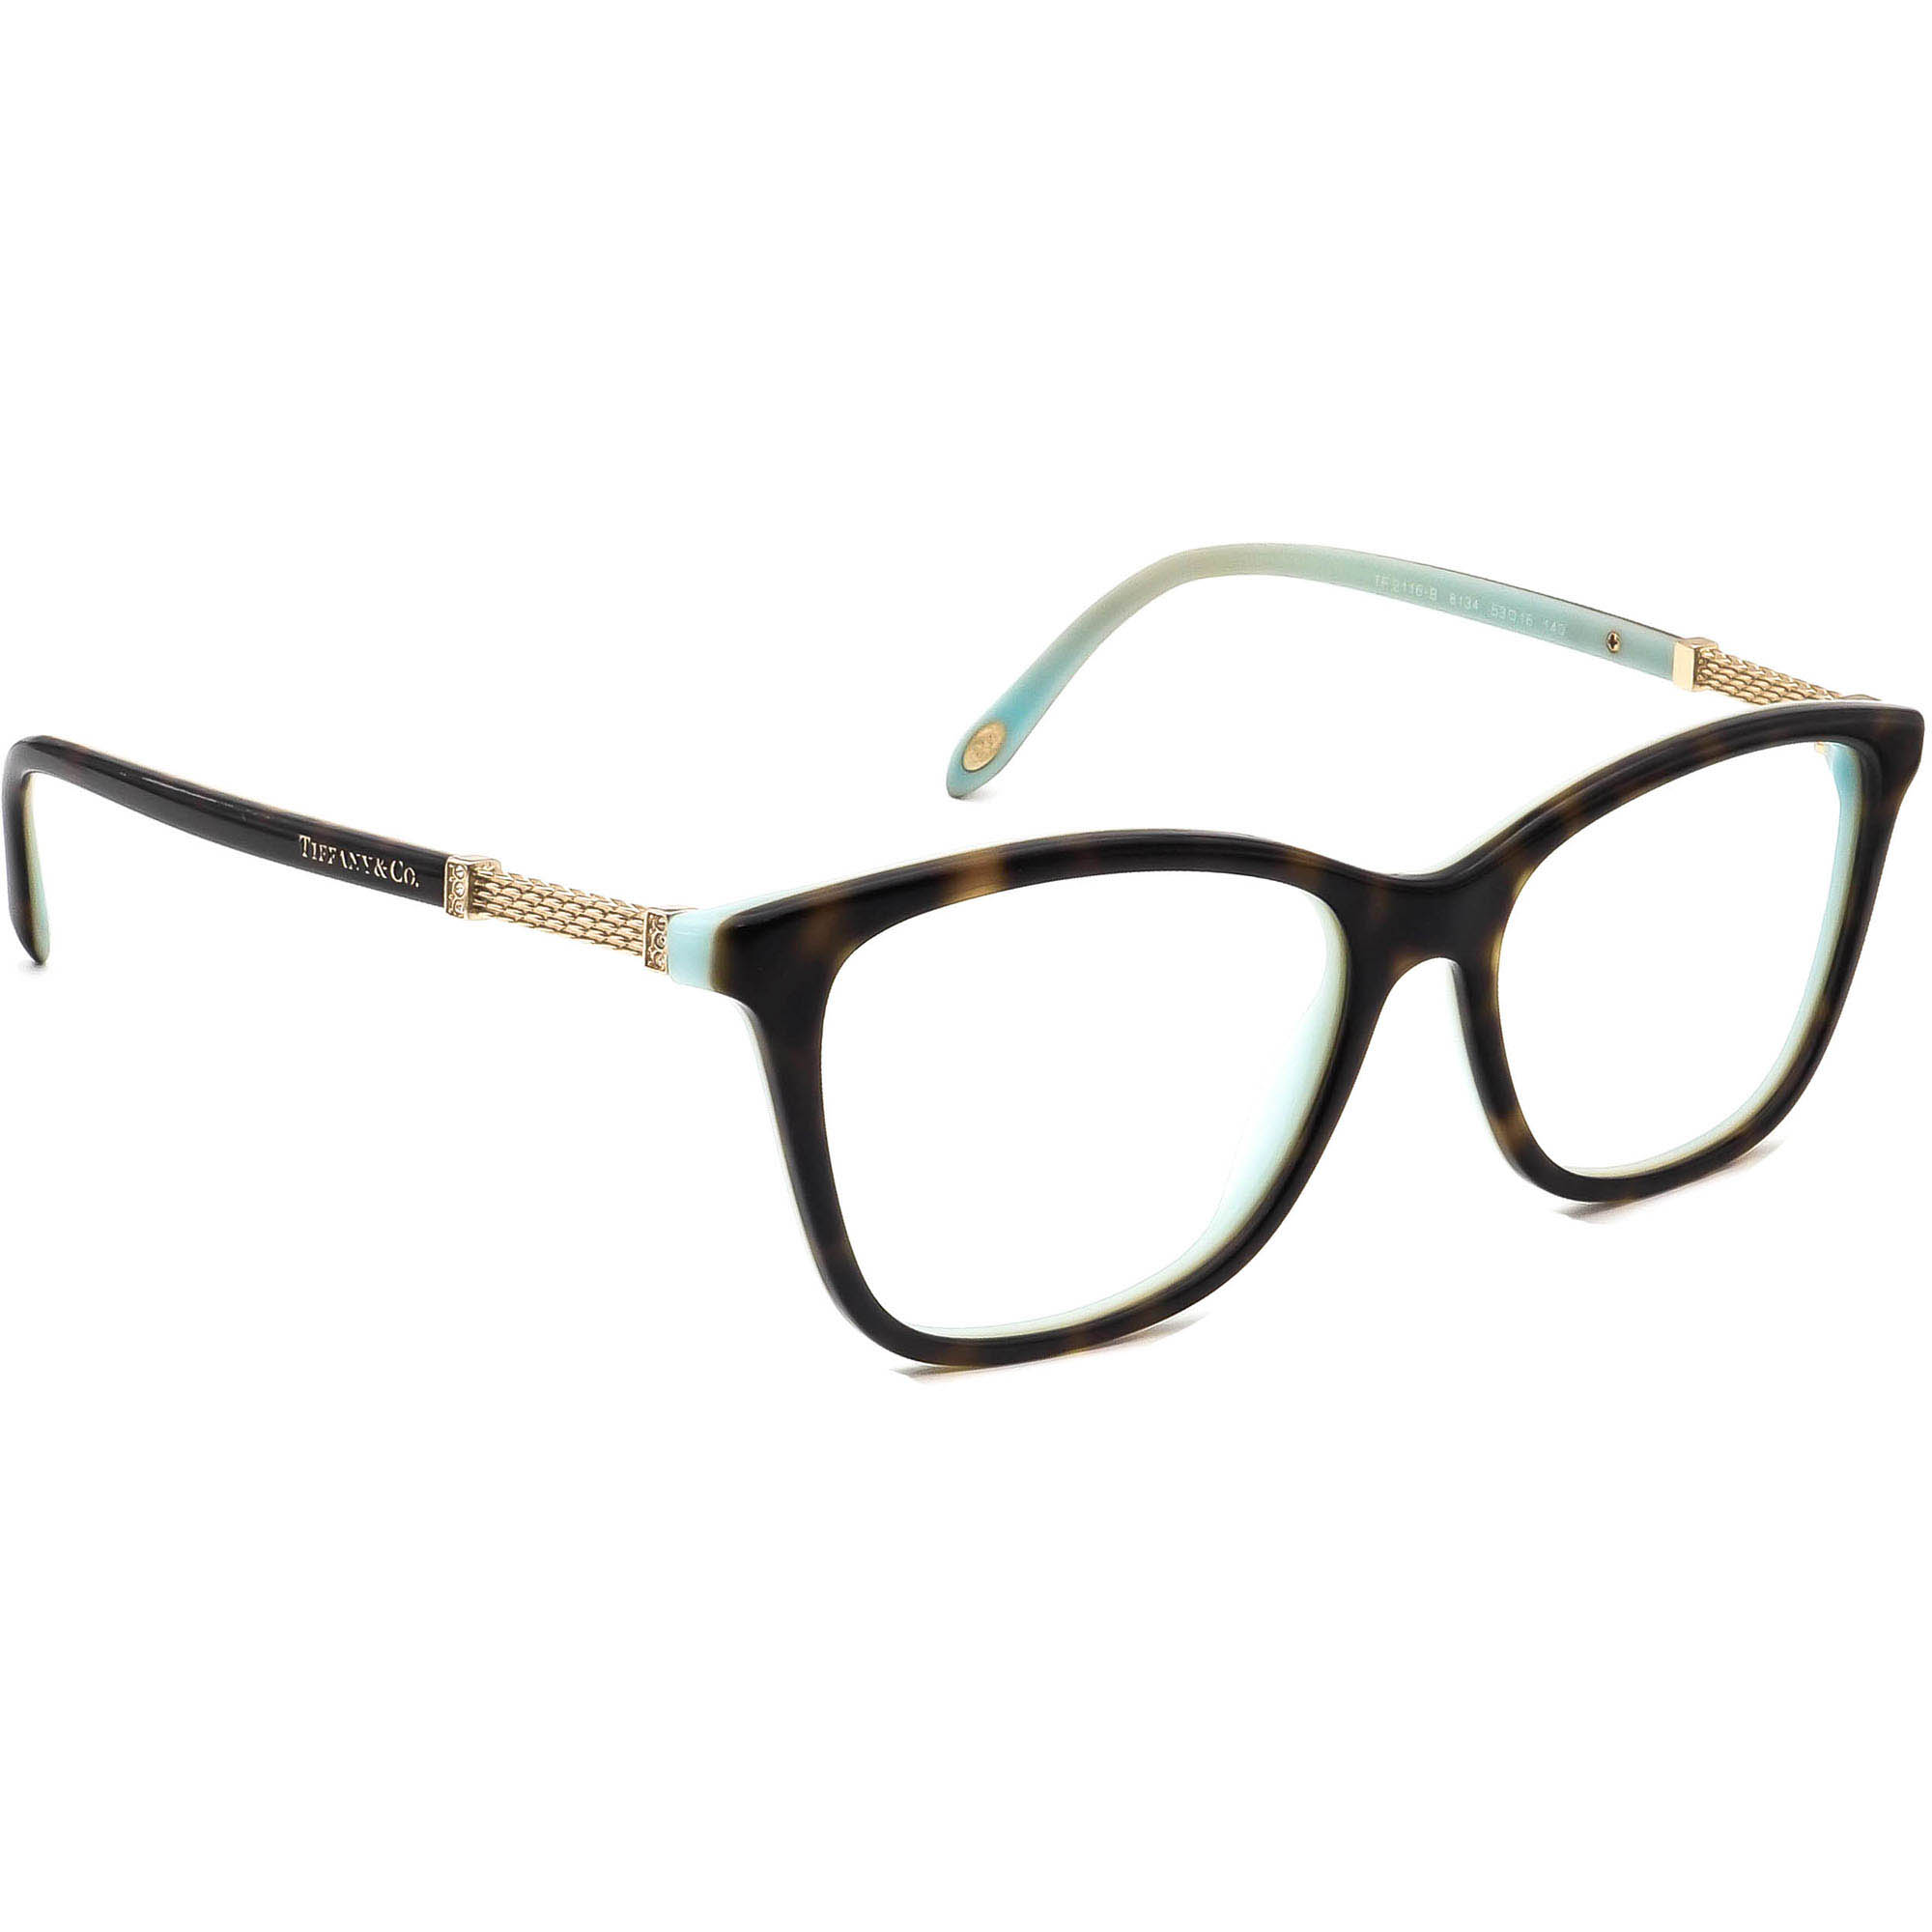 Tiffany & Co. TF 2116-B 8134 Eyeglasses